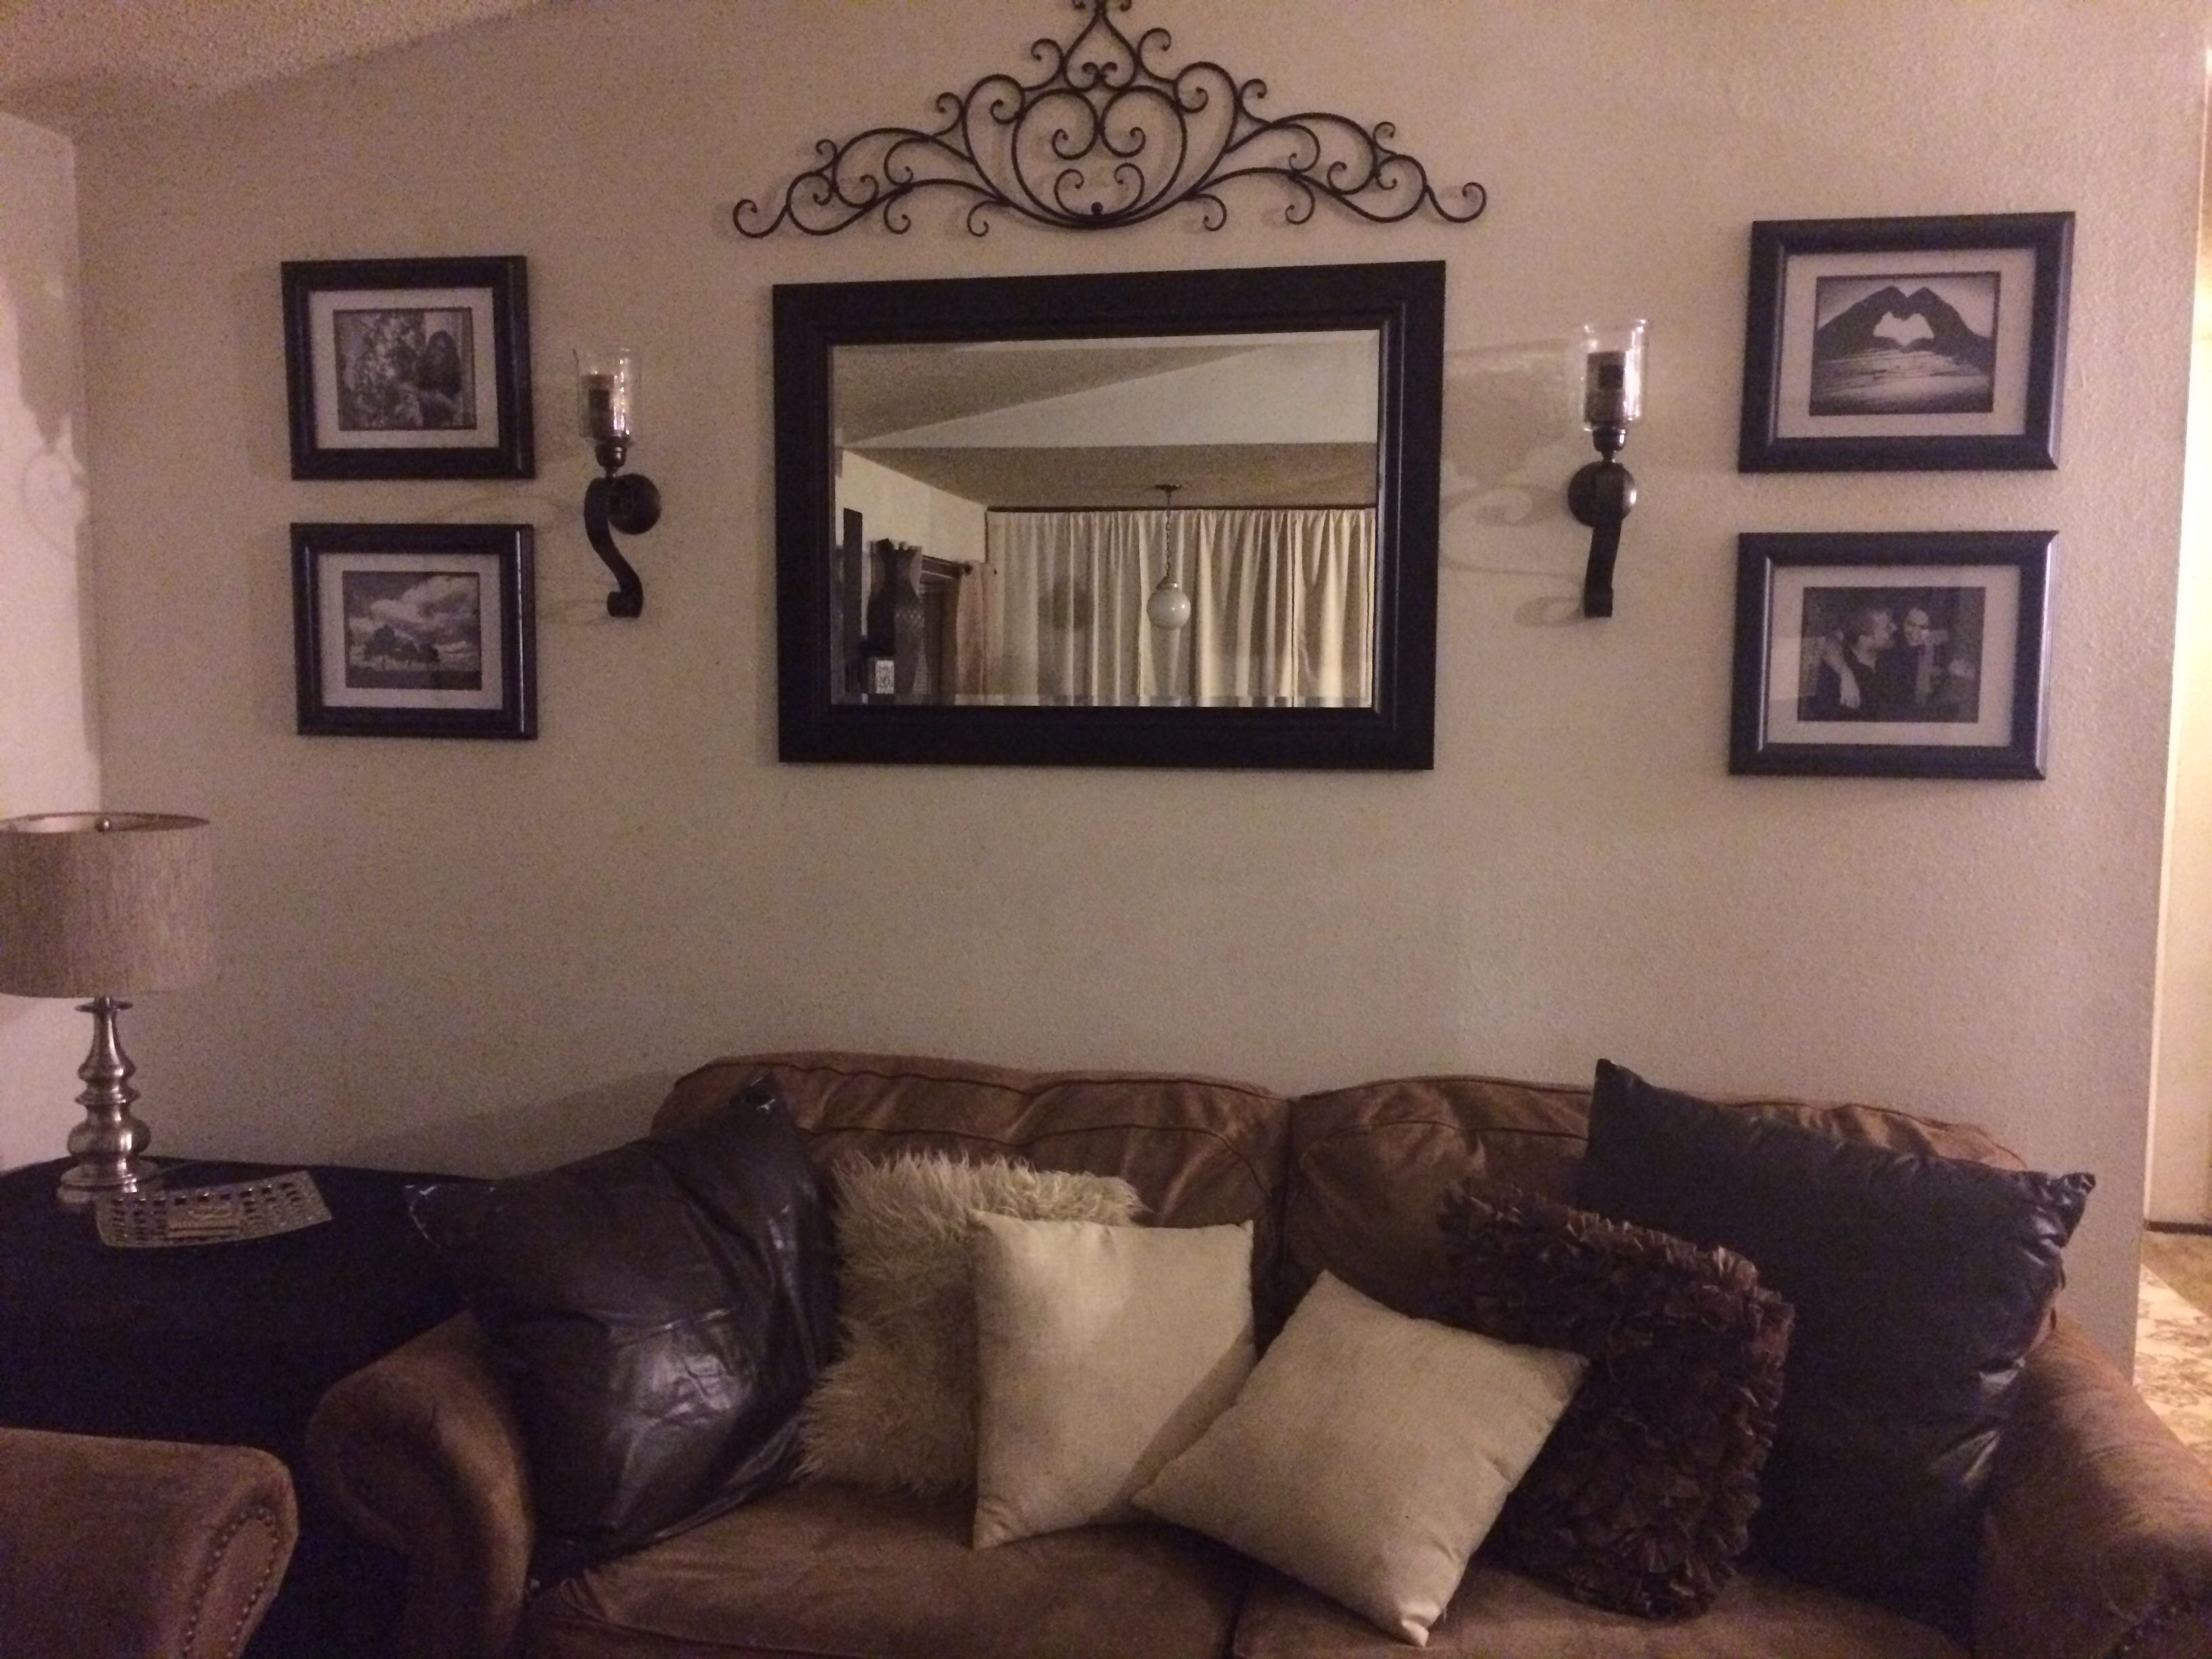 Exceptionnel Behind Couch Wall In Living Room Mirror, Frame, Sconces, And Metal Decor